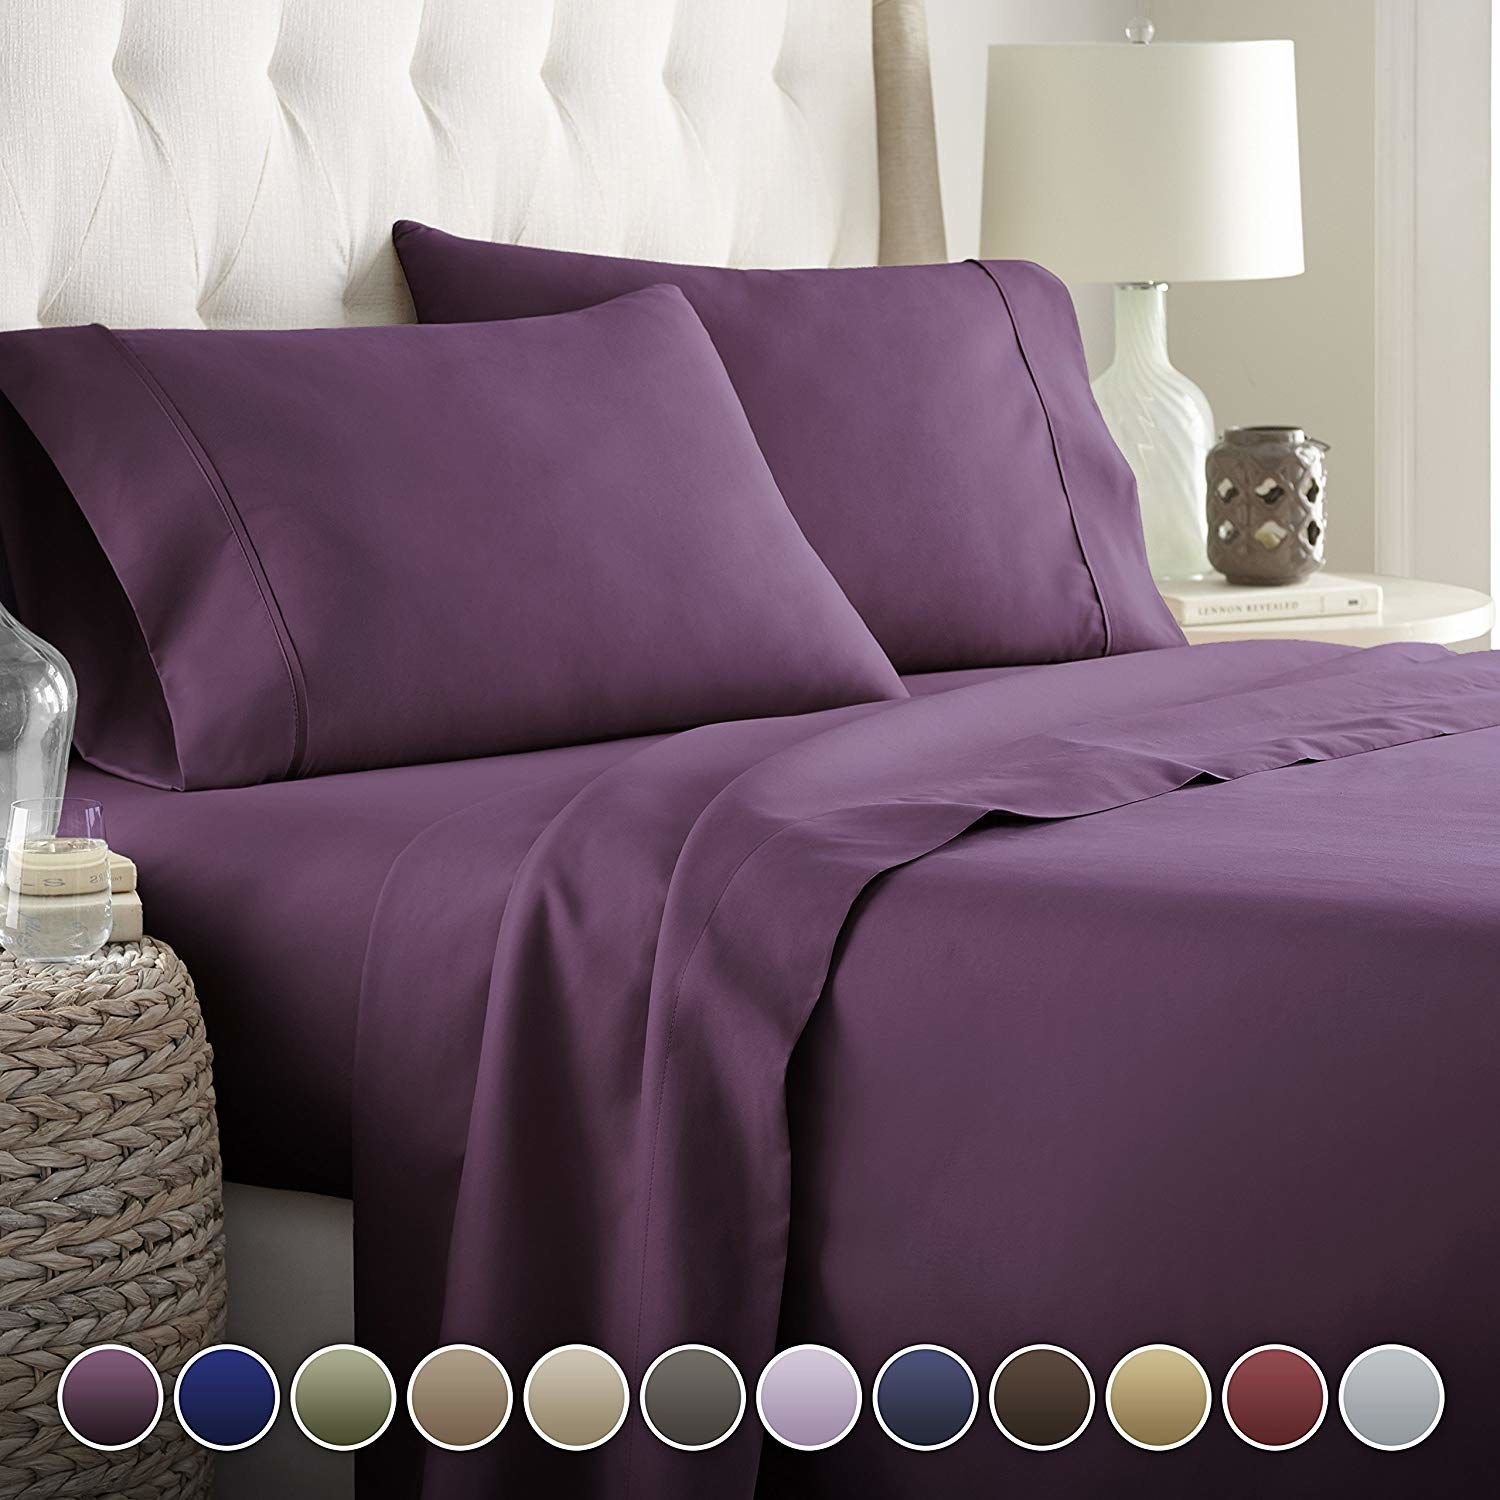 the sheets in eggplant purple